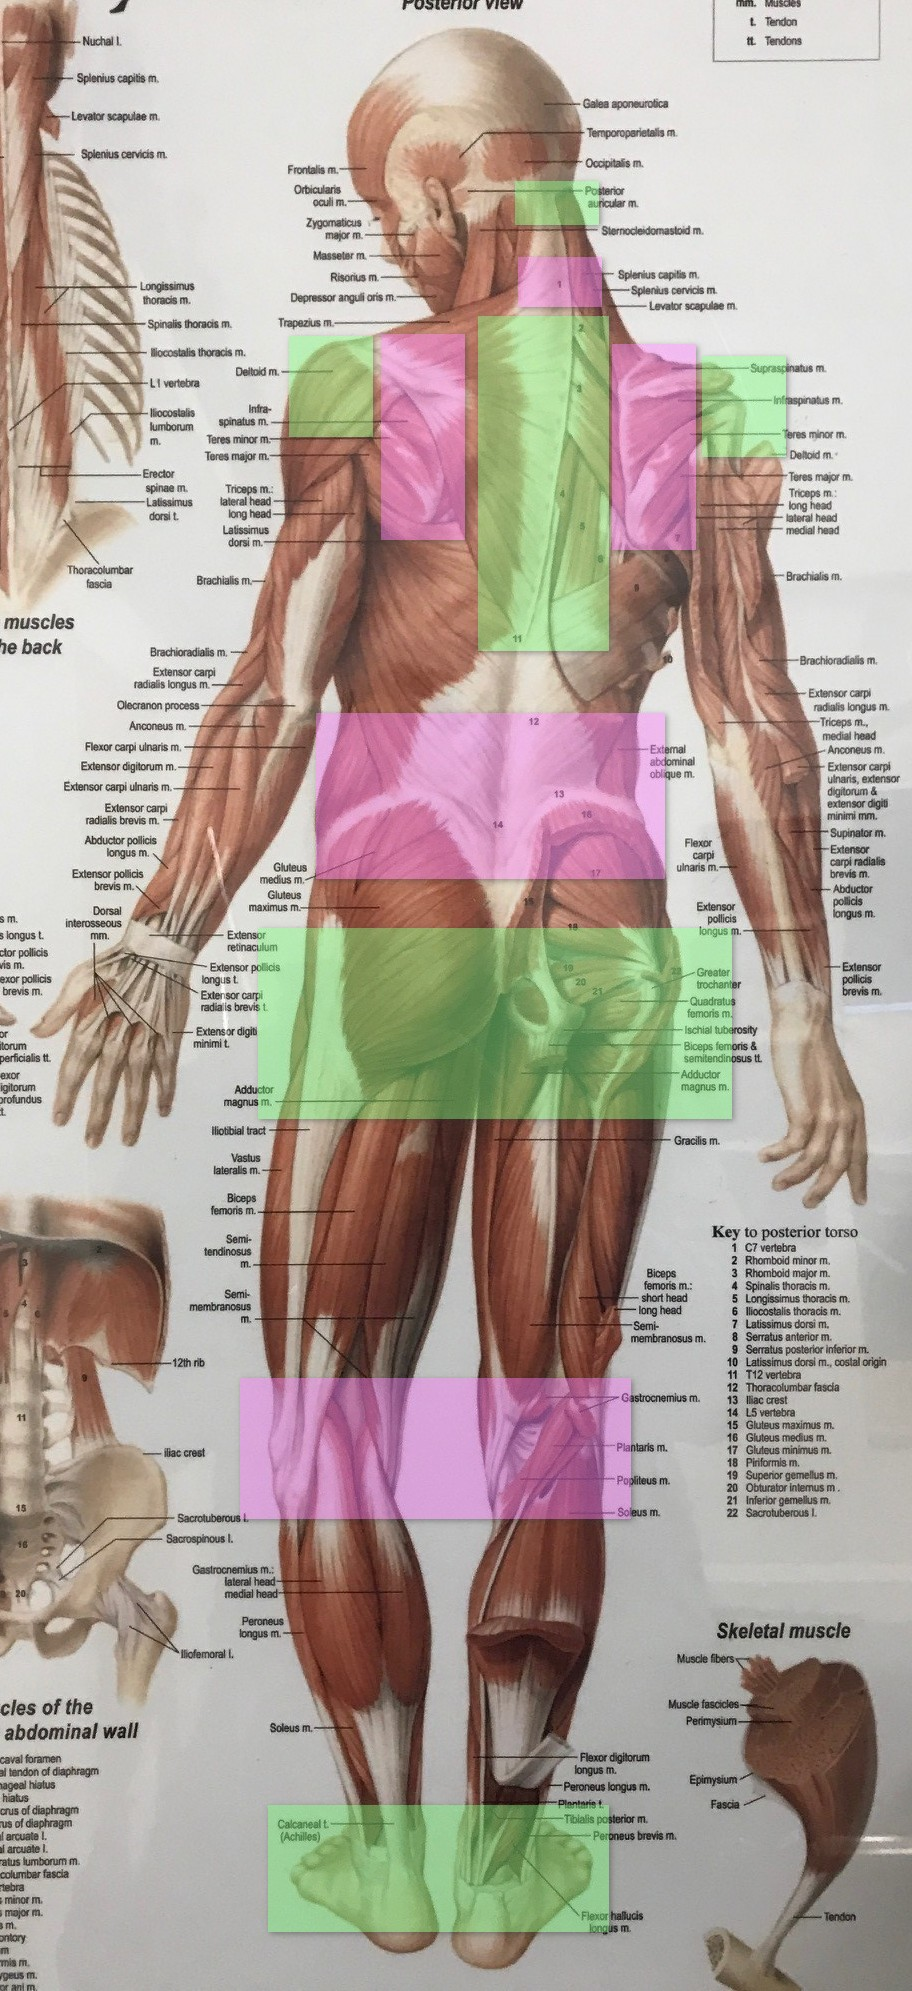 Human body showing regions of mobility and stability